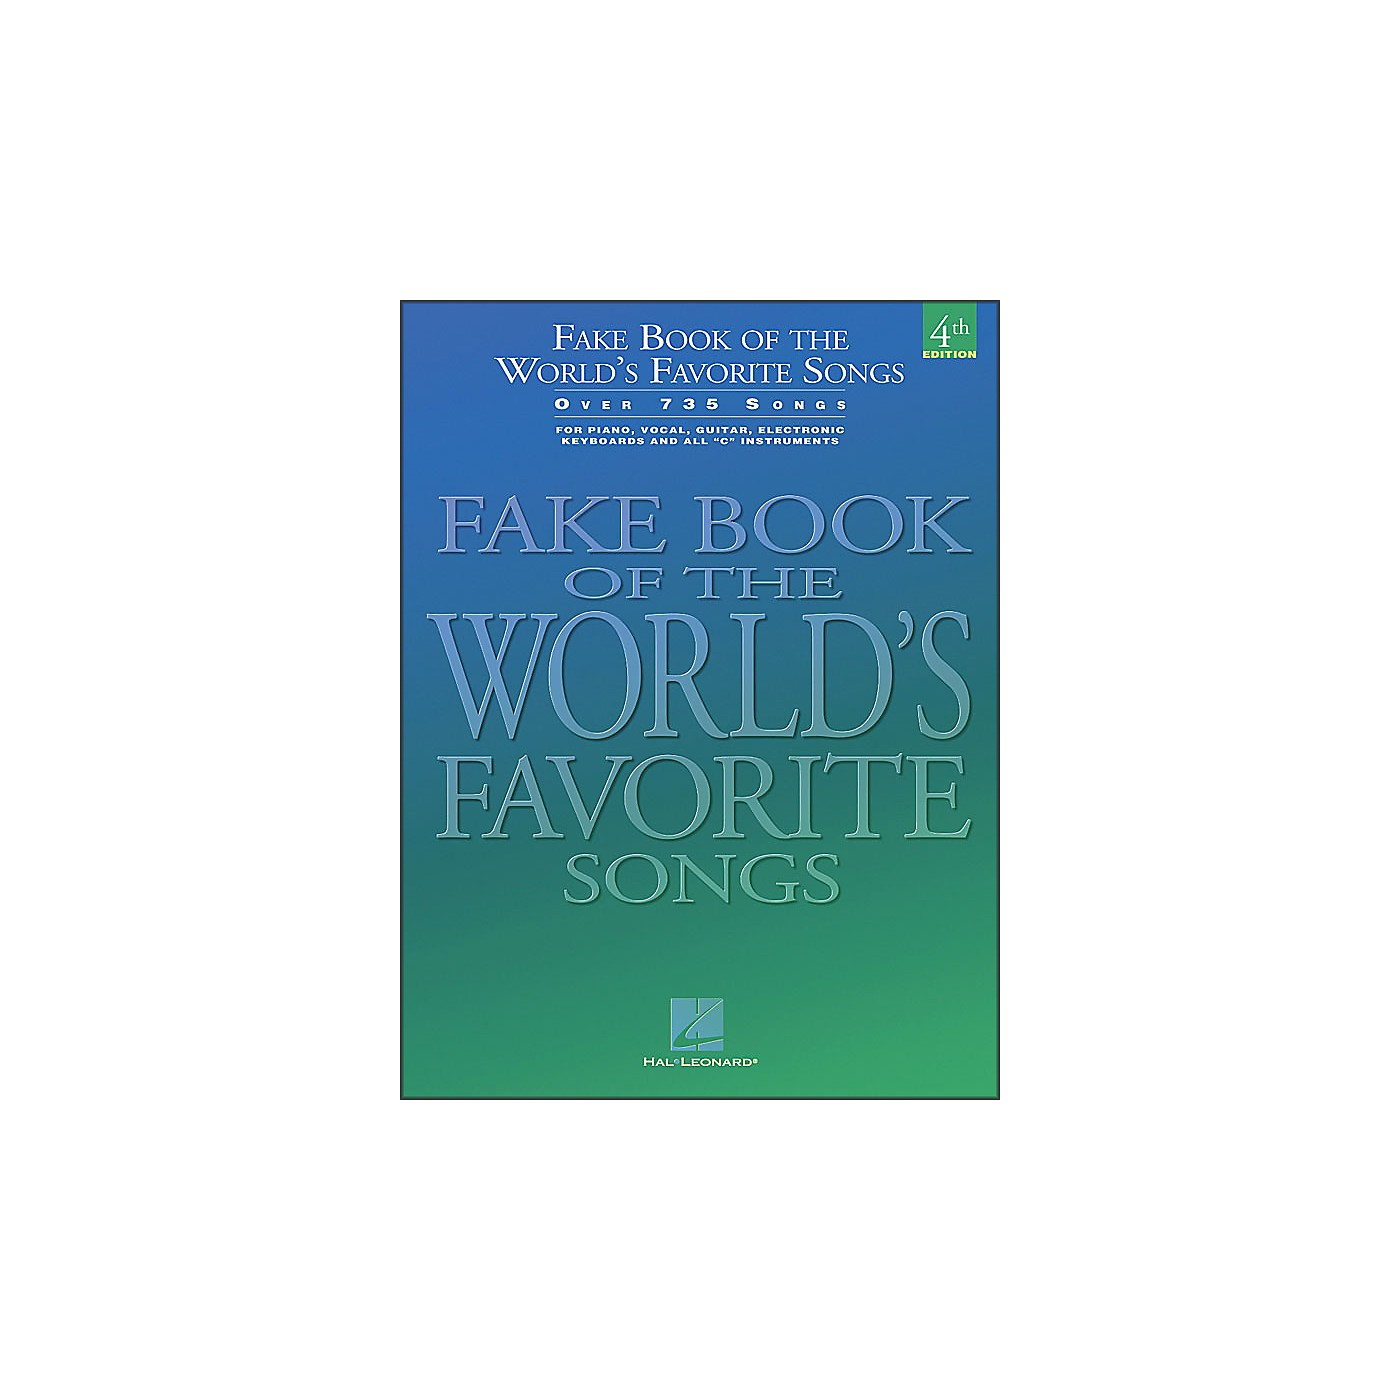 Hal Leonard Fake Book Of The World's Favorite Songs 4th Edition - Over 735 Songs thumbnail